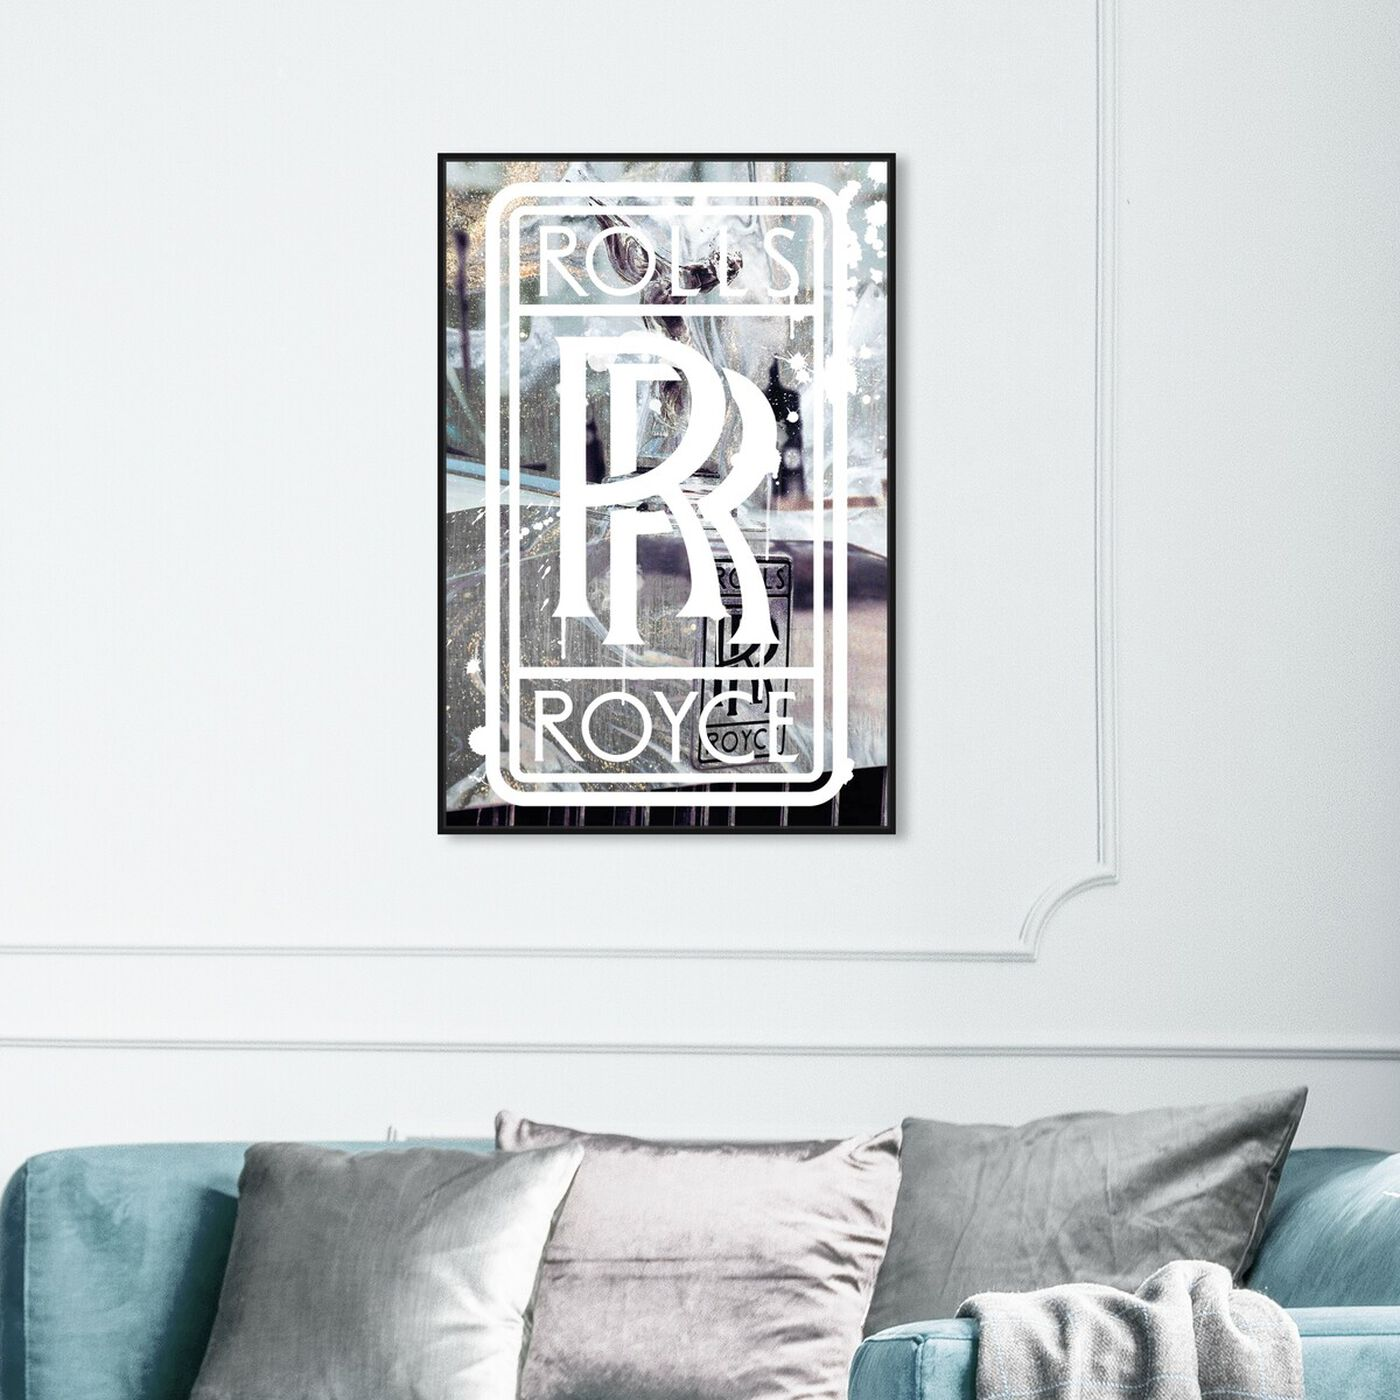 Hanging view of Roll Up Like featuring fashion and glam and lifestyle art.